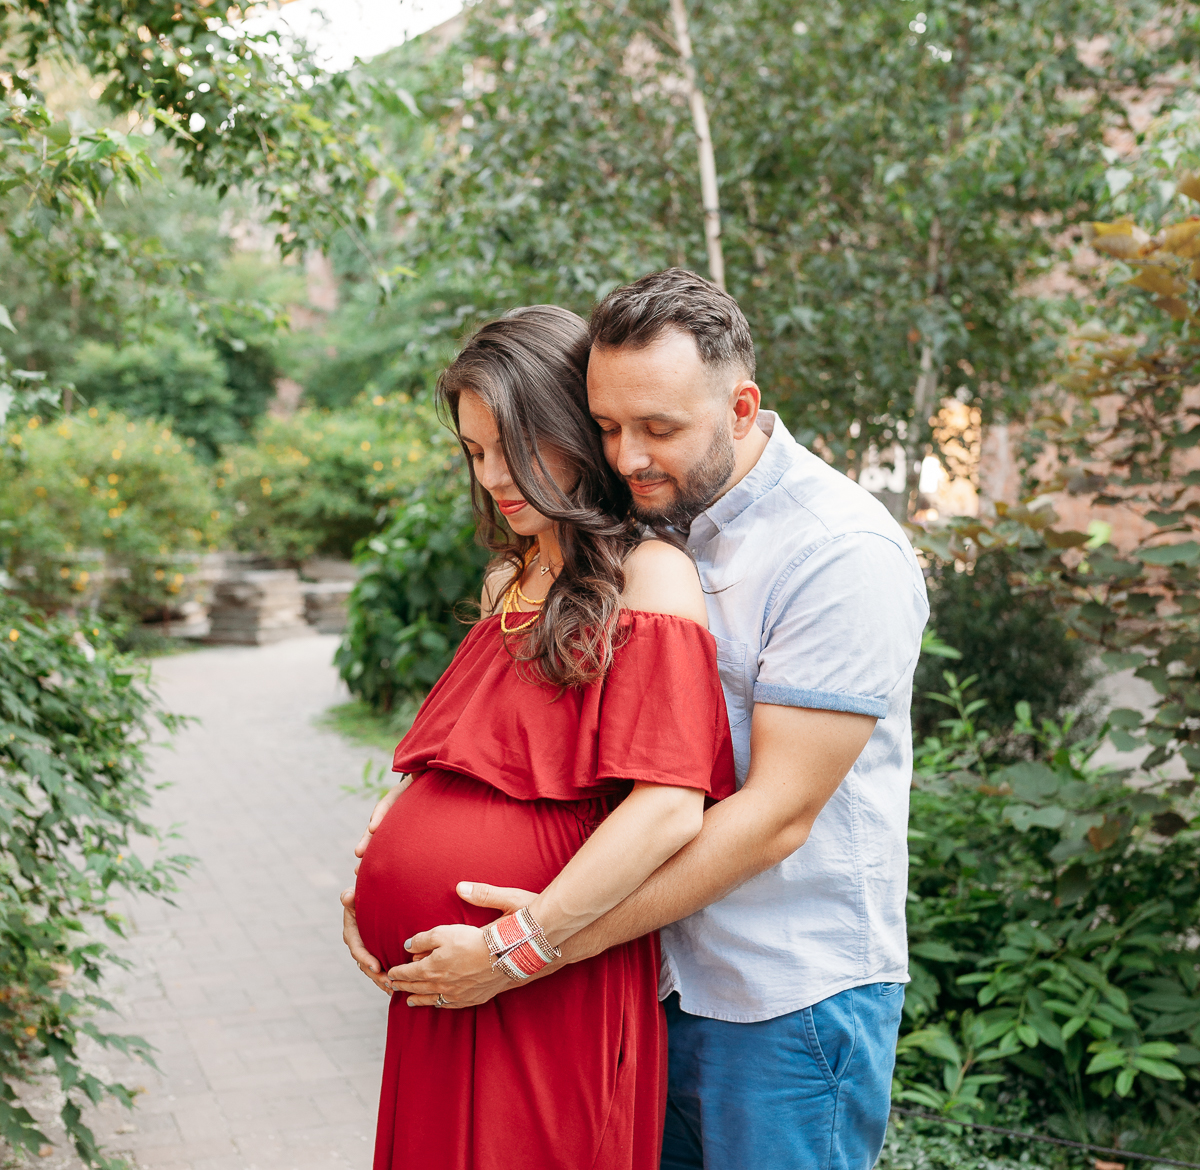 nyc maternity photographer, nyc, brooklyn, dumbo, nj maternity photographer, manhattan family photographer, brooklyn maternity photographer chariselisabeth 2